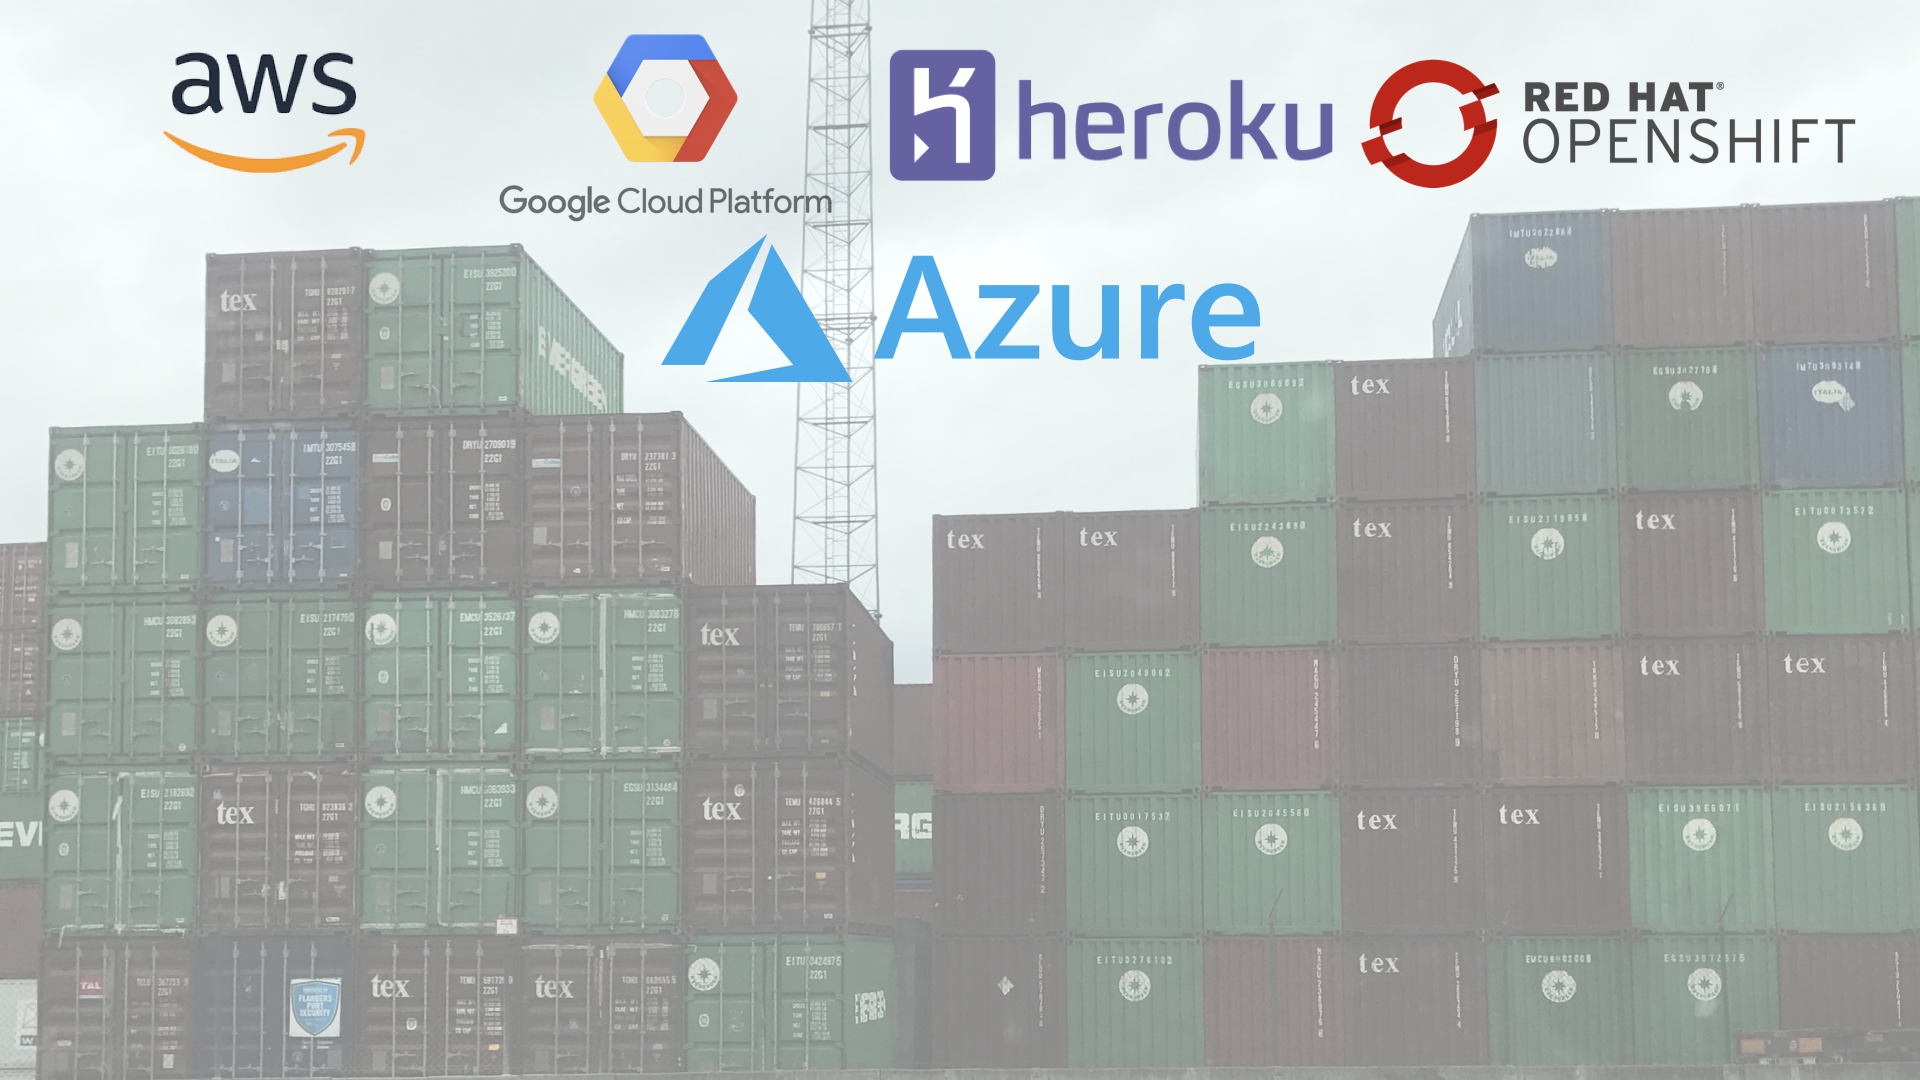 Containers in the cloud